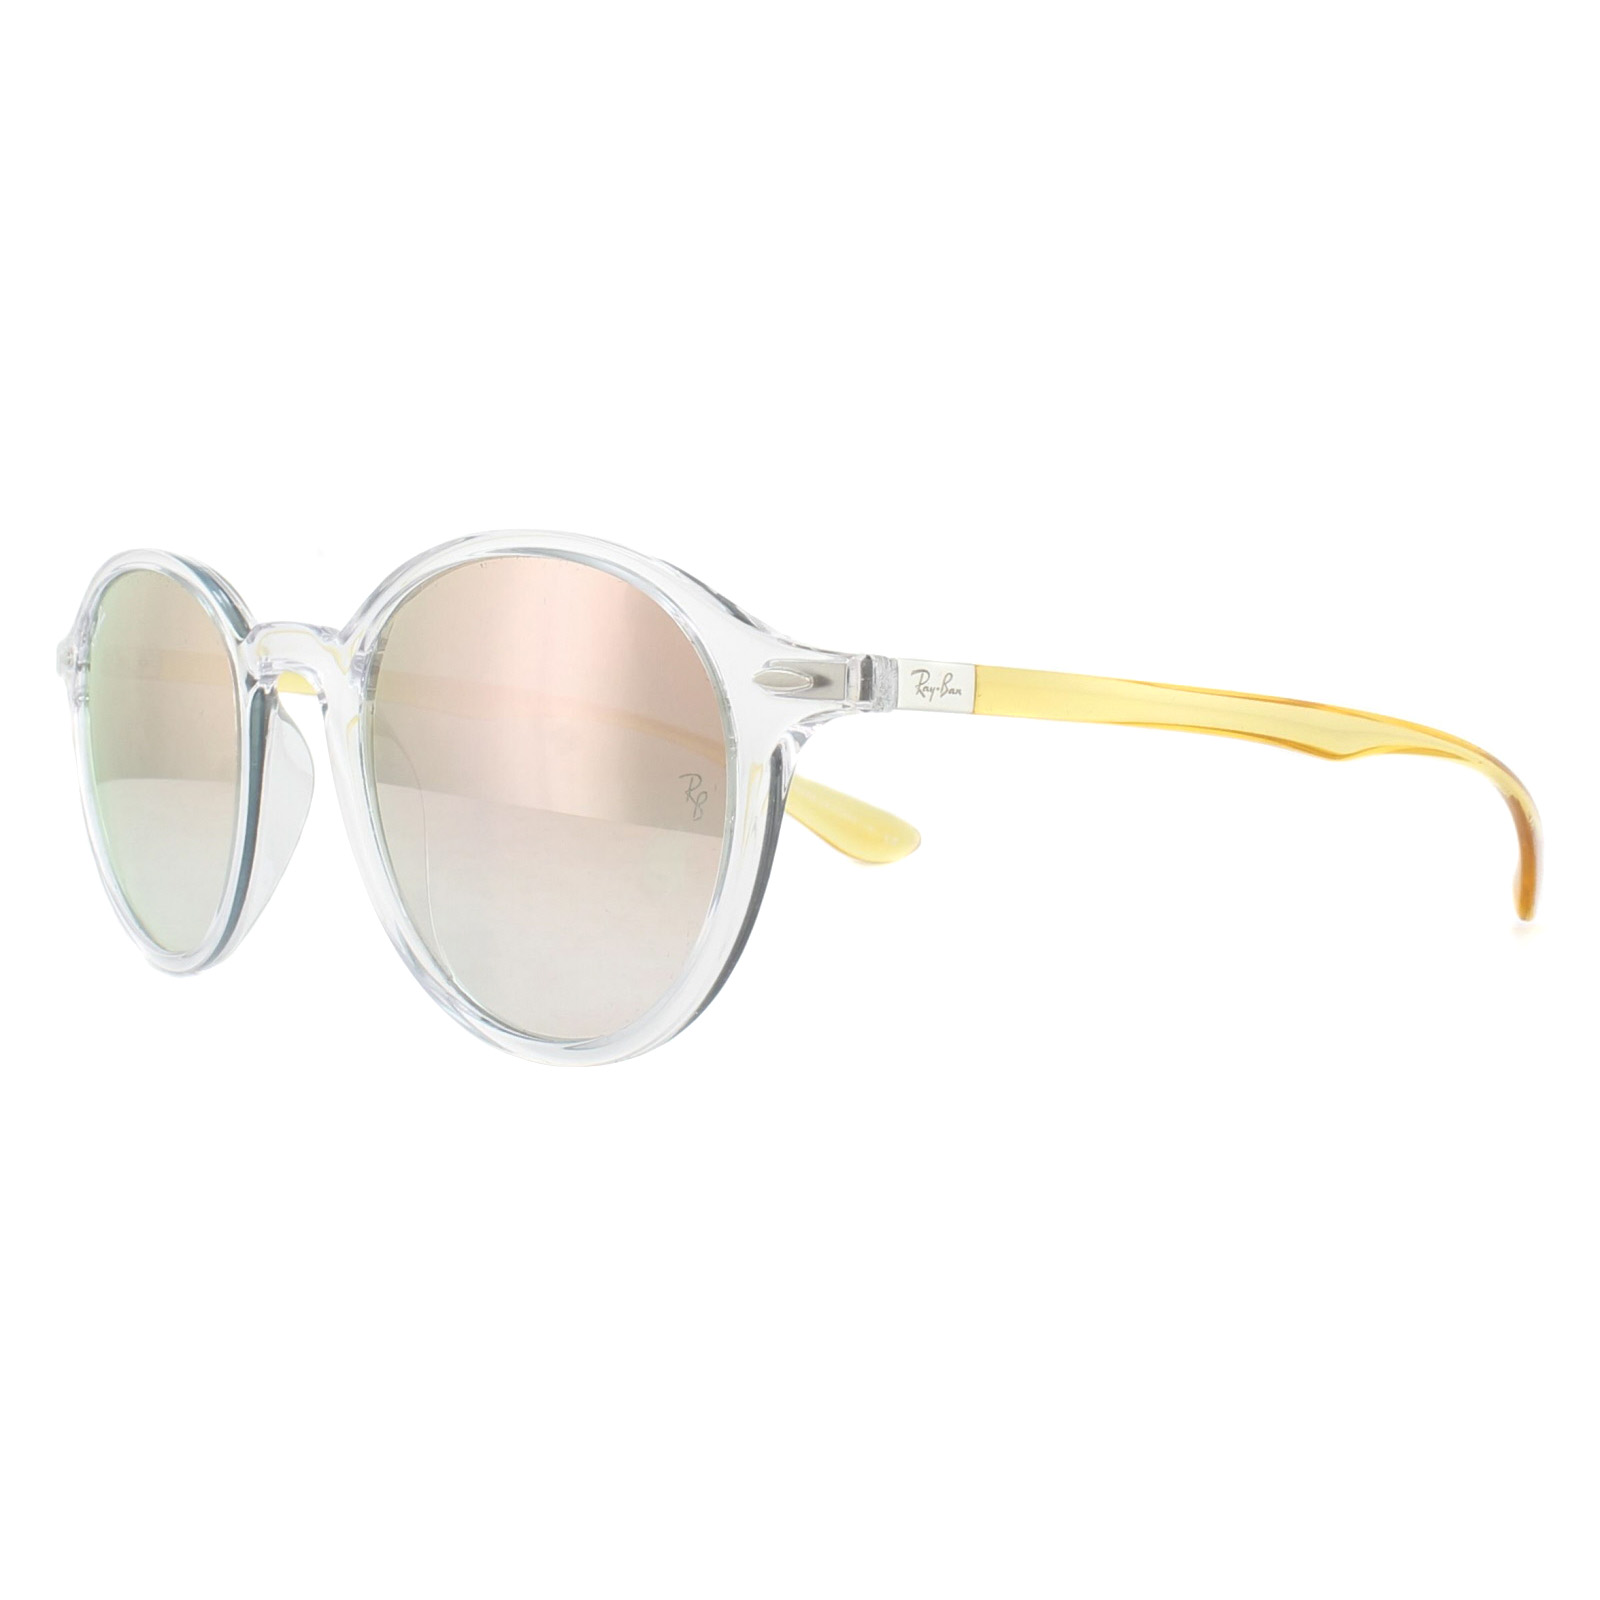 7a1fb3a865e Sentinel Ray-Ban Sunglasses Round Liteforce 4237 62887Y Clear with Yellow  Copper Mirror